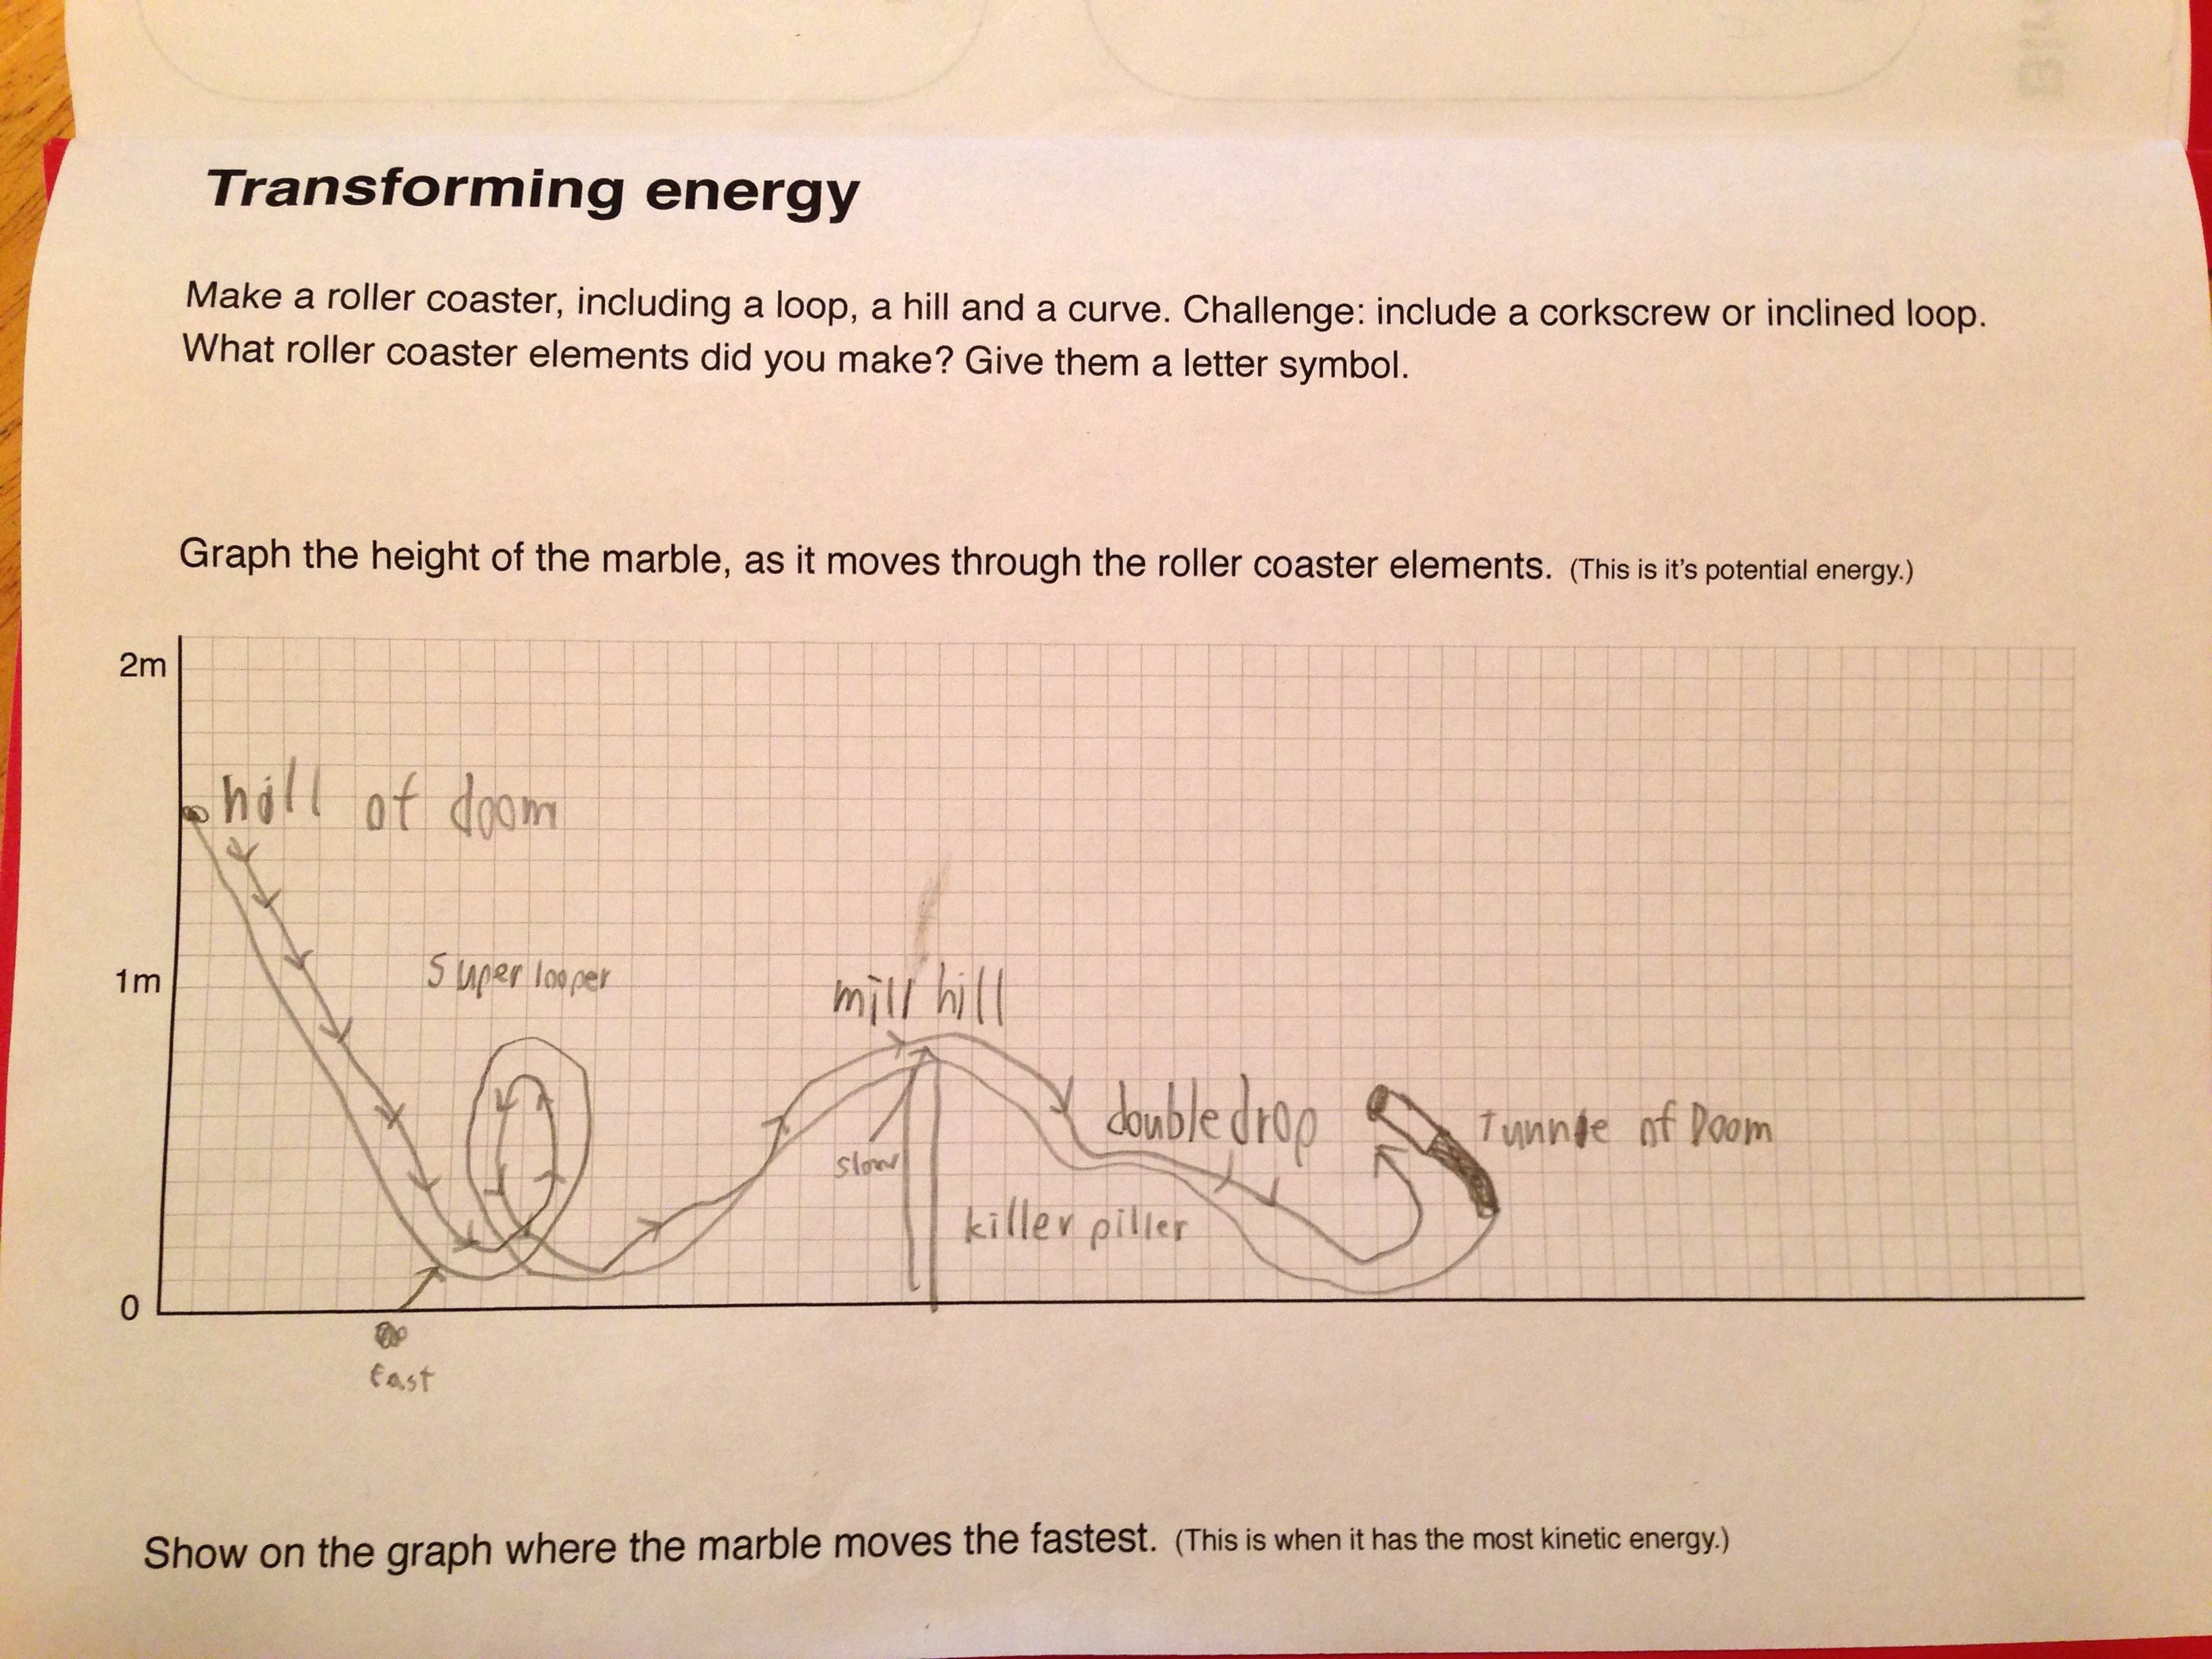 Roller Coaster And Energy Transformation Ingridscience